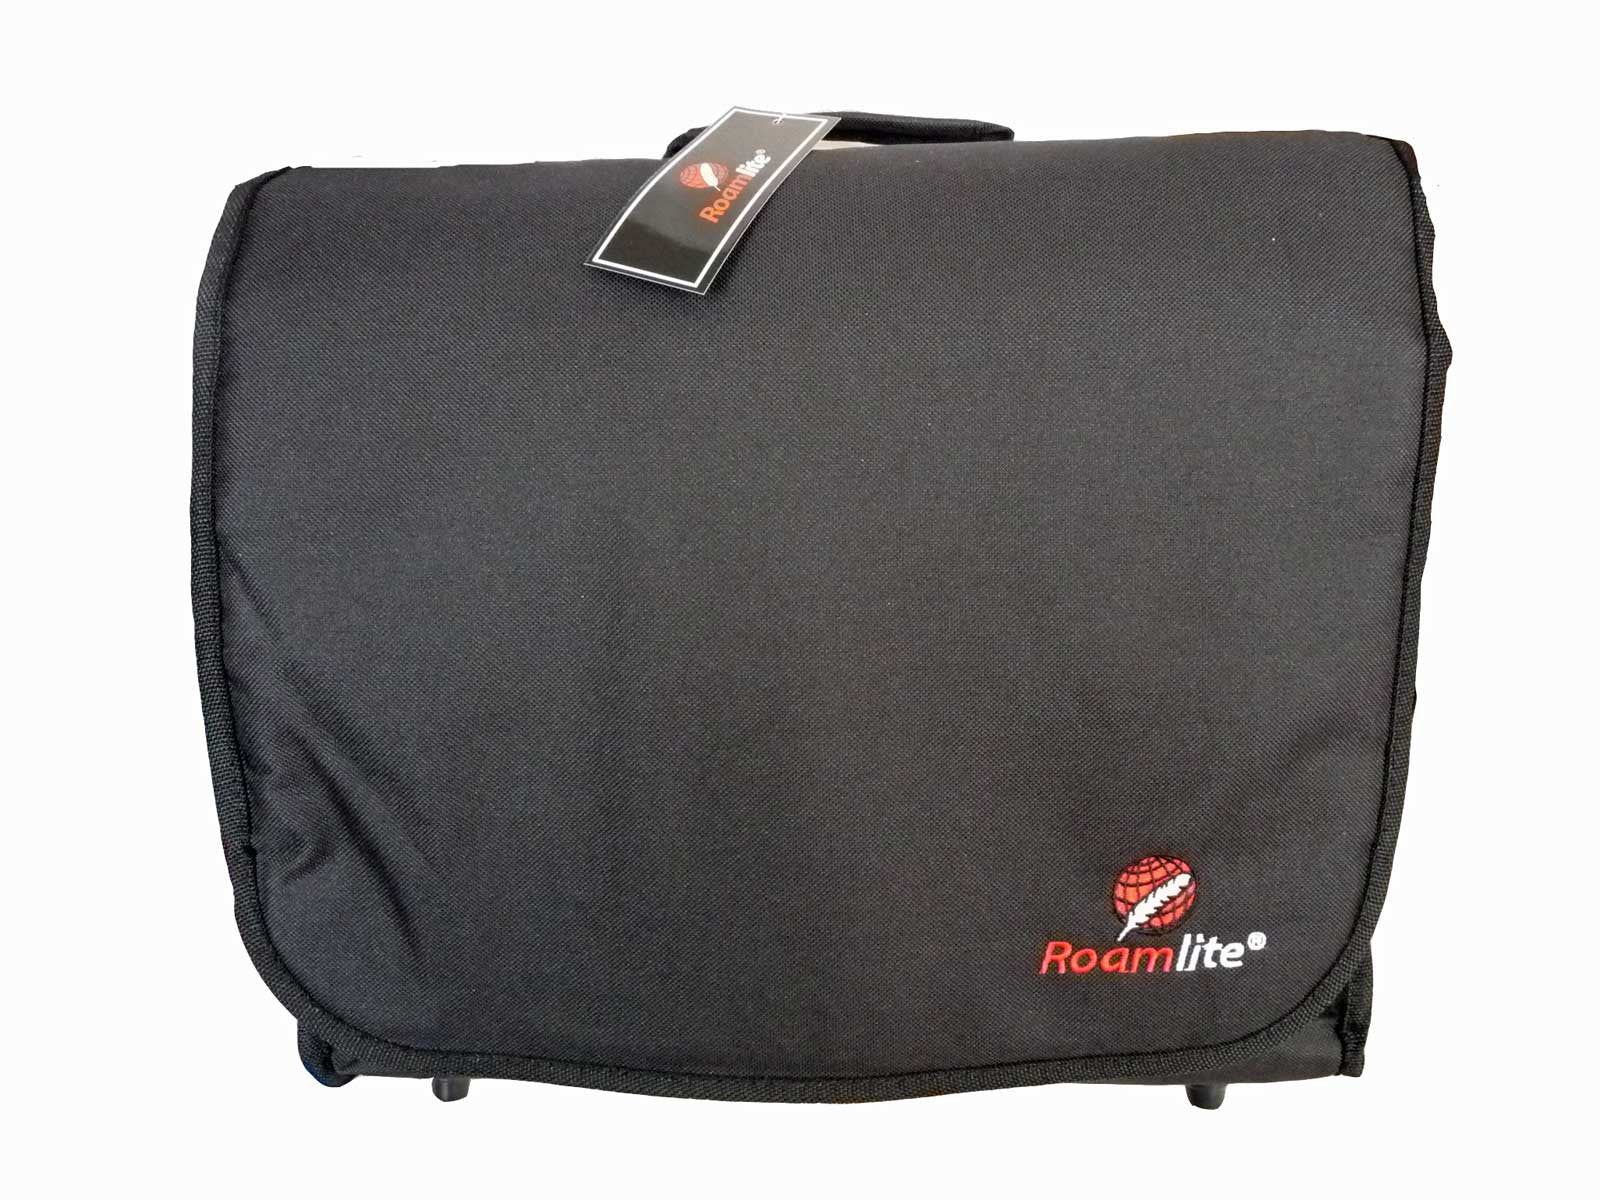 Dispatch Record Bag RL38Kf Front View 2